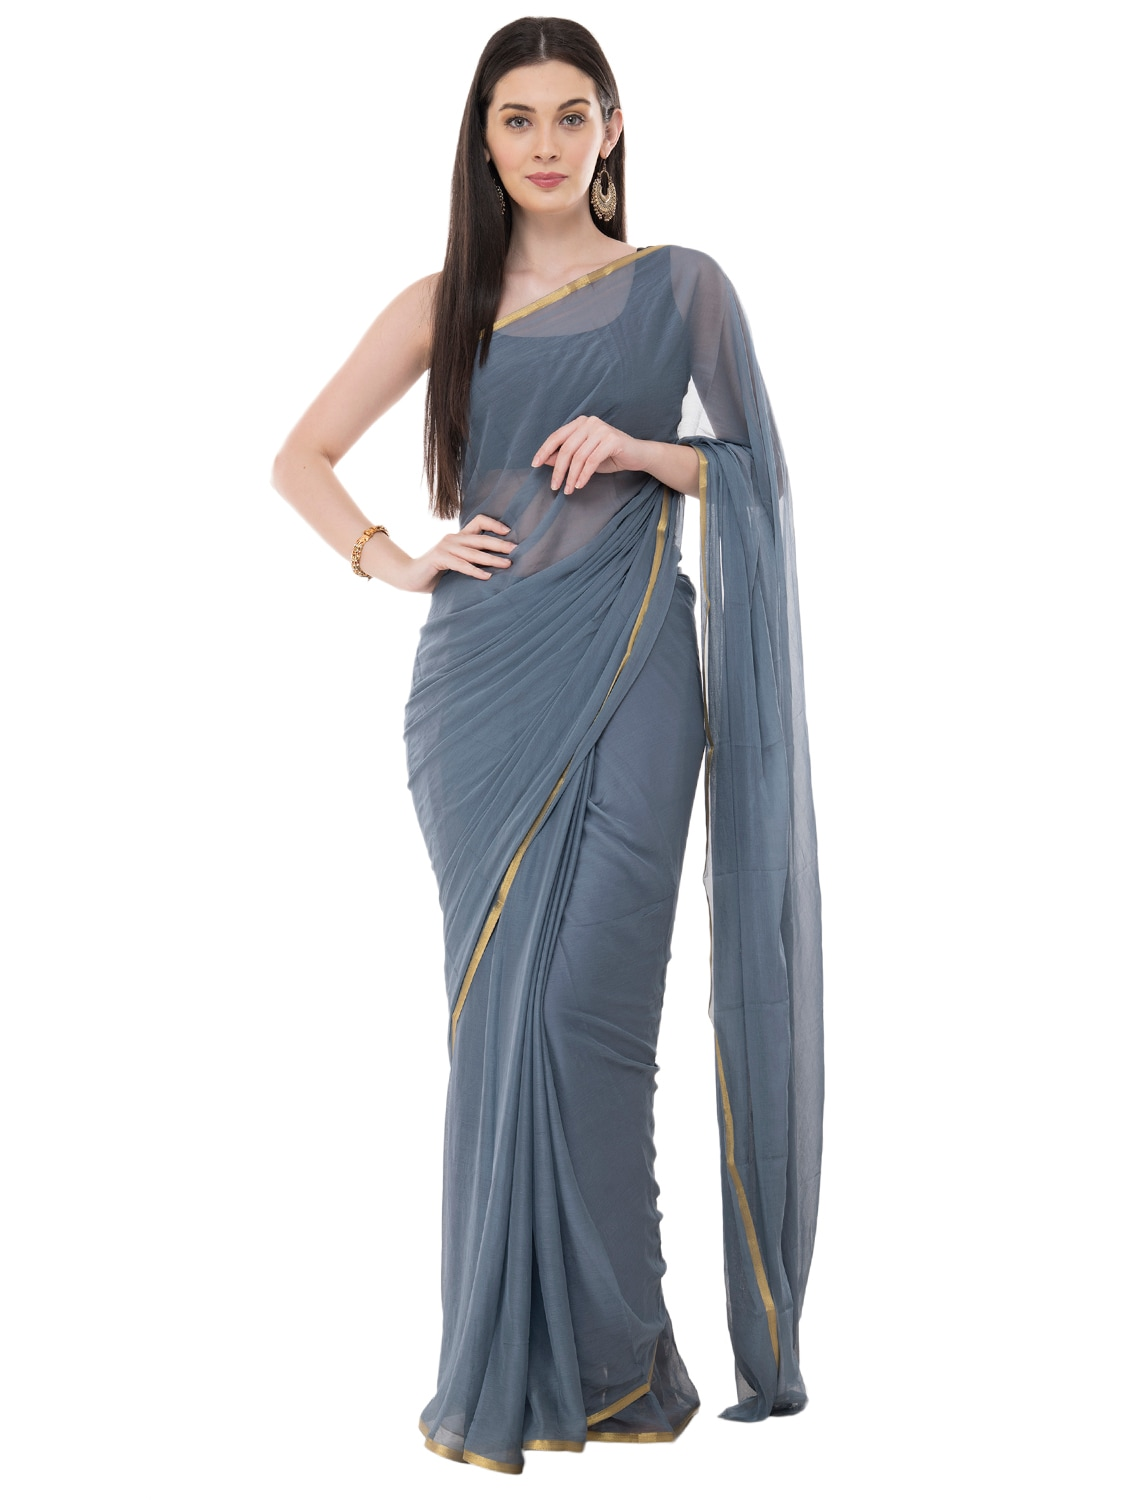 Image result for girl in simplesaree